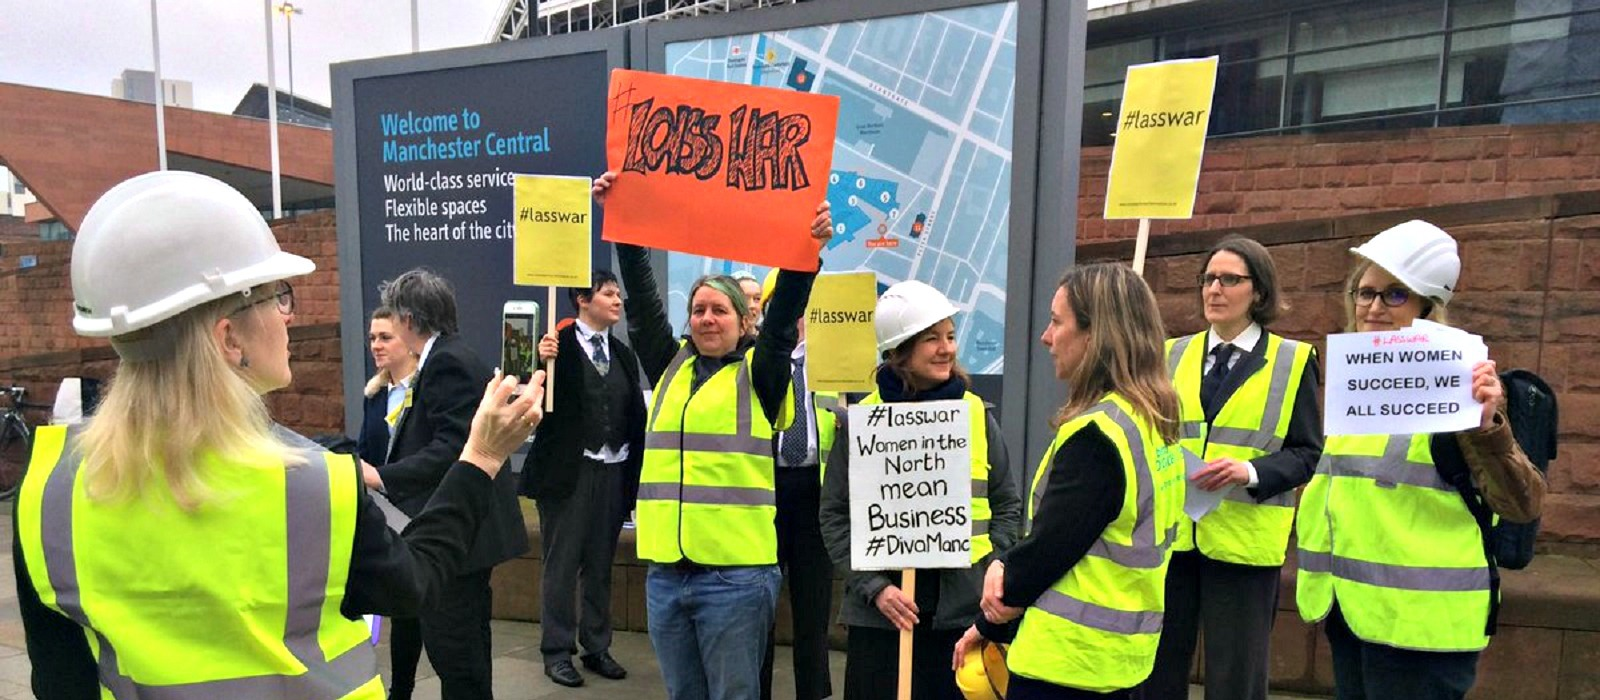 Women protesting in neon jackets and hard hats at a protest